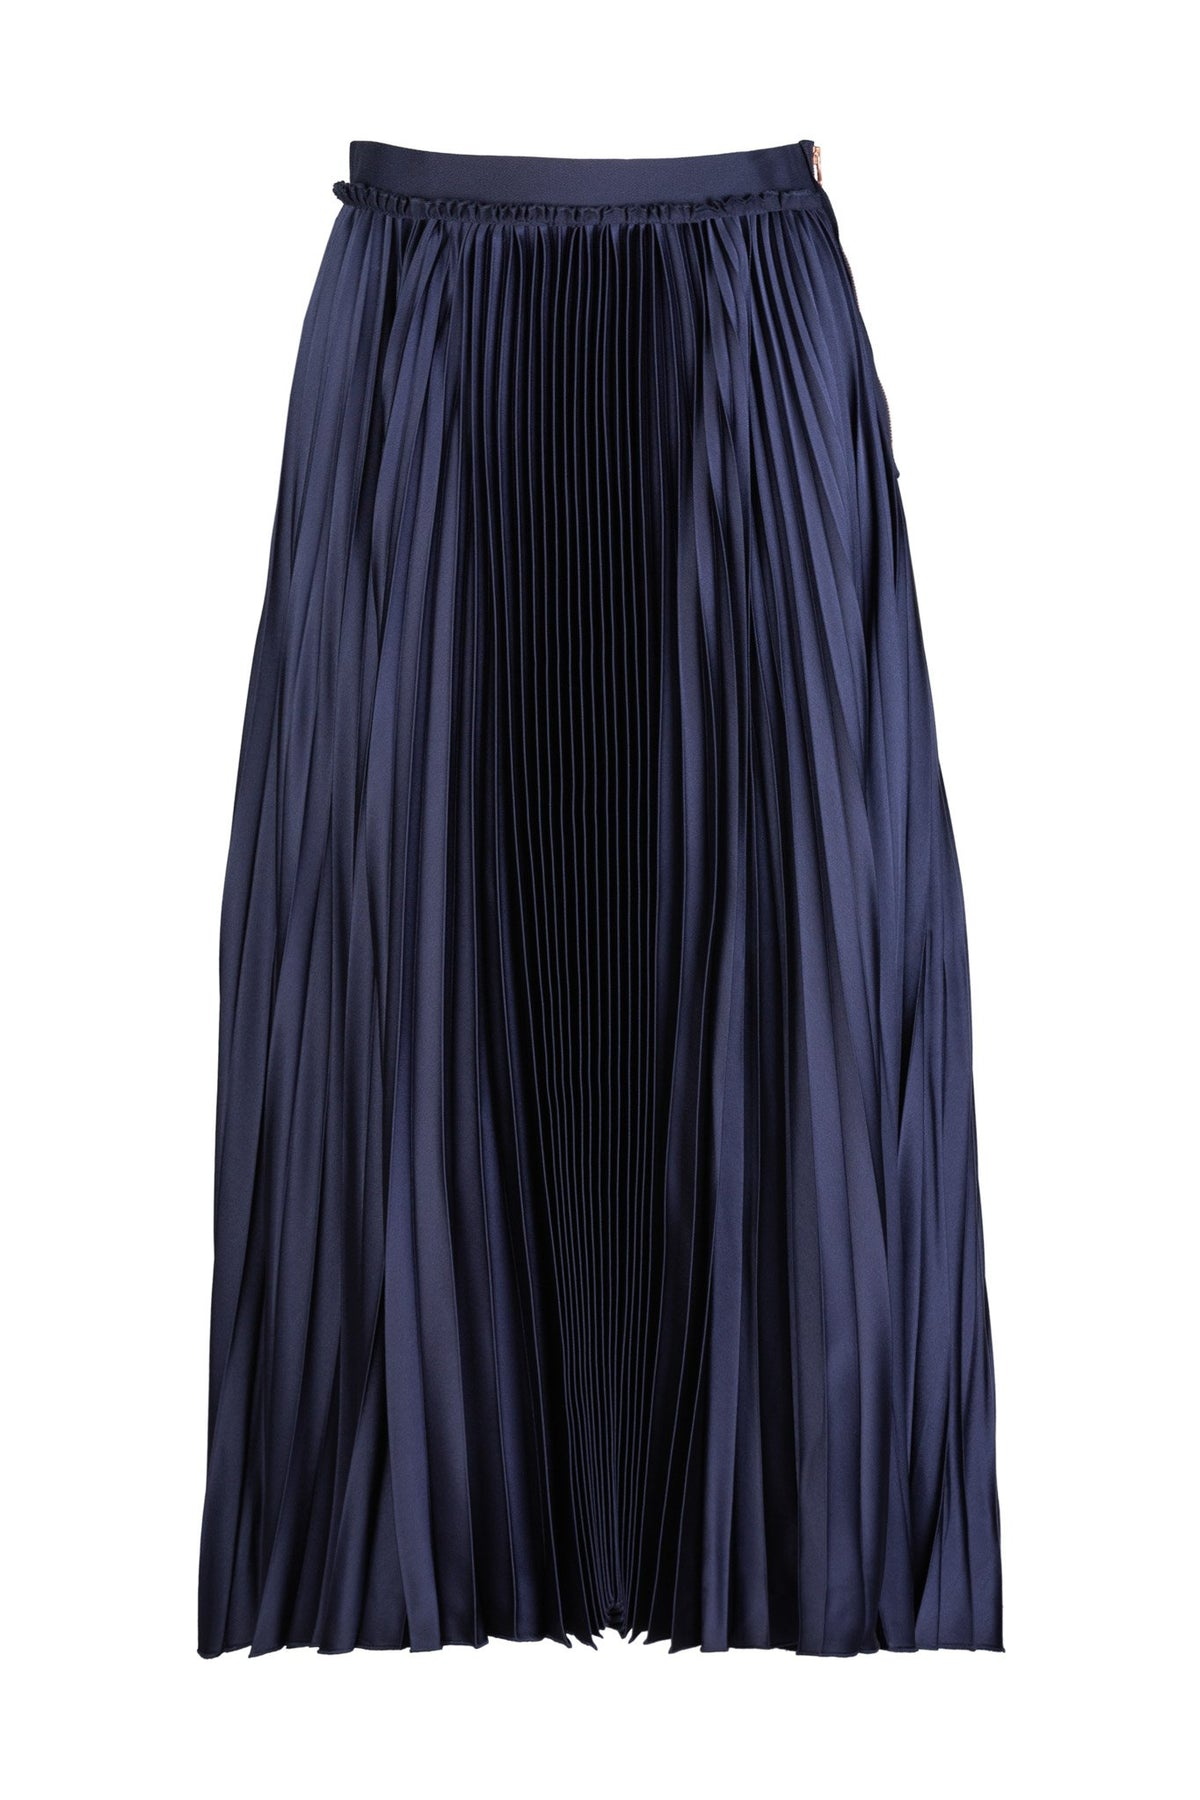 Fringe | Skirt | Dark Navy